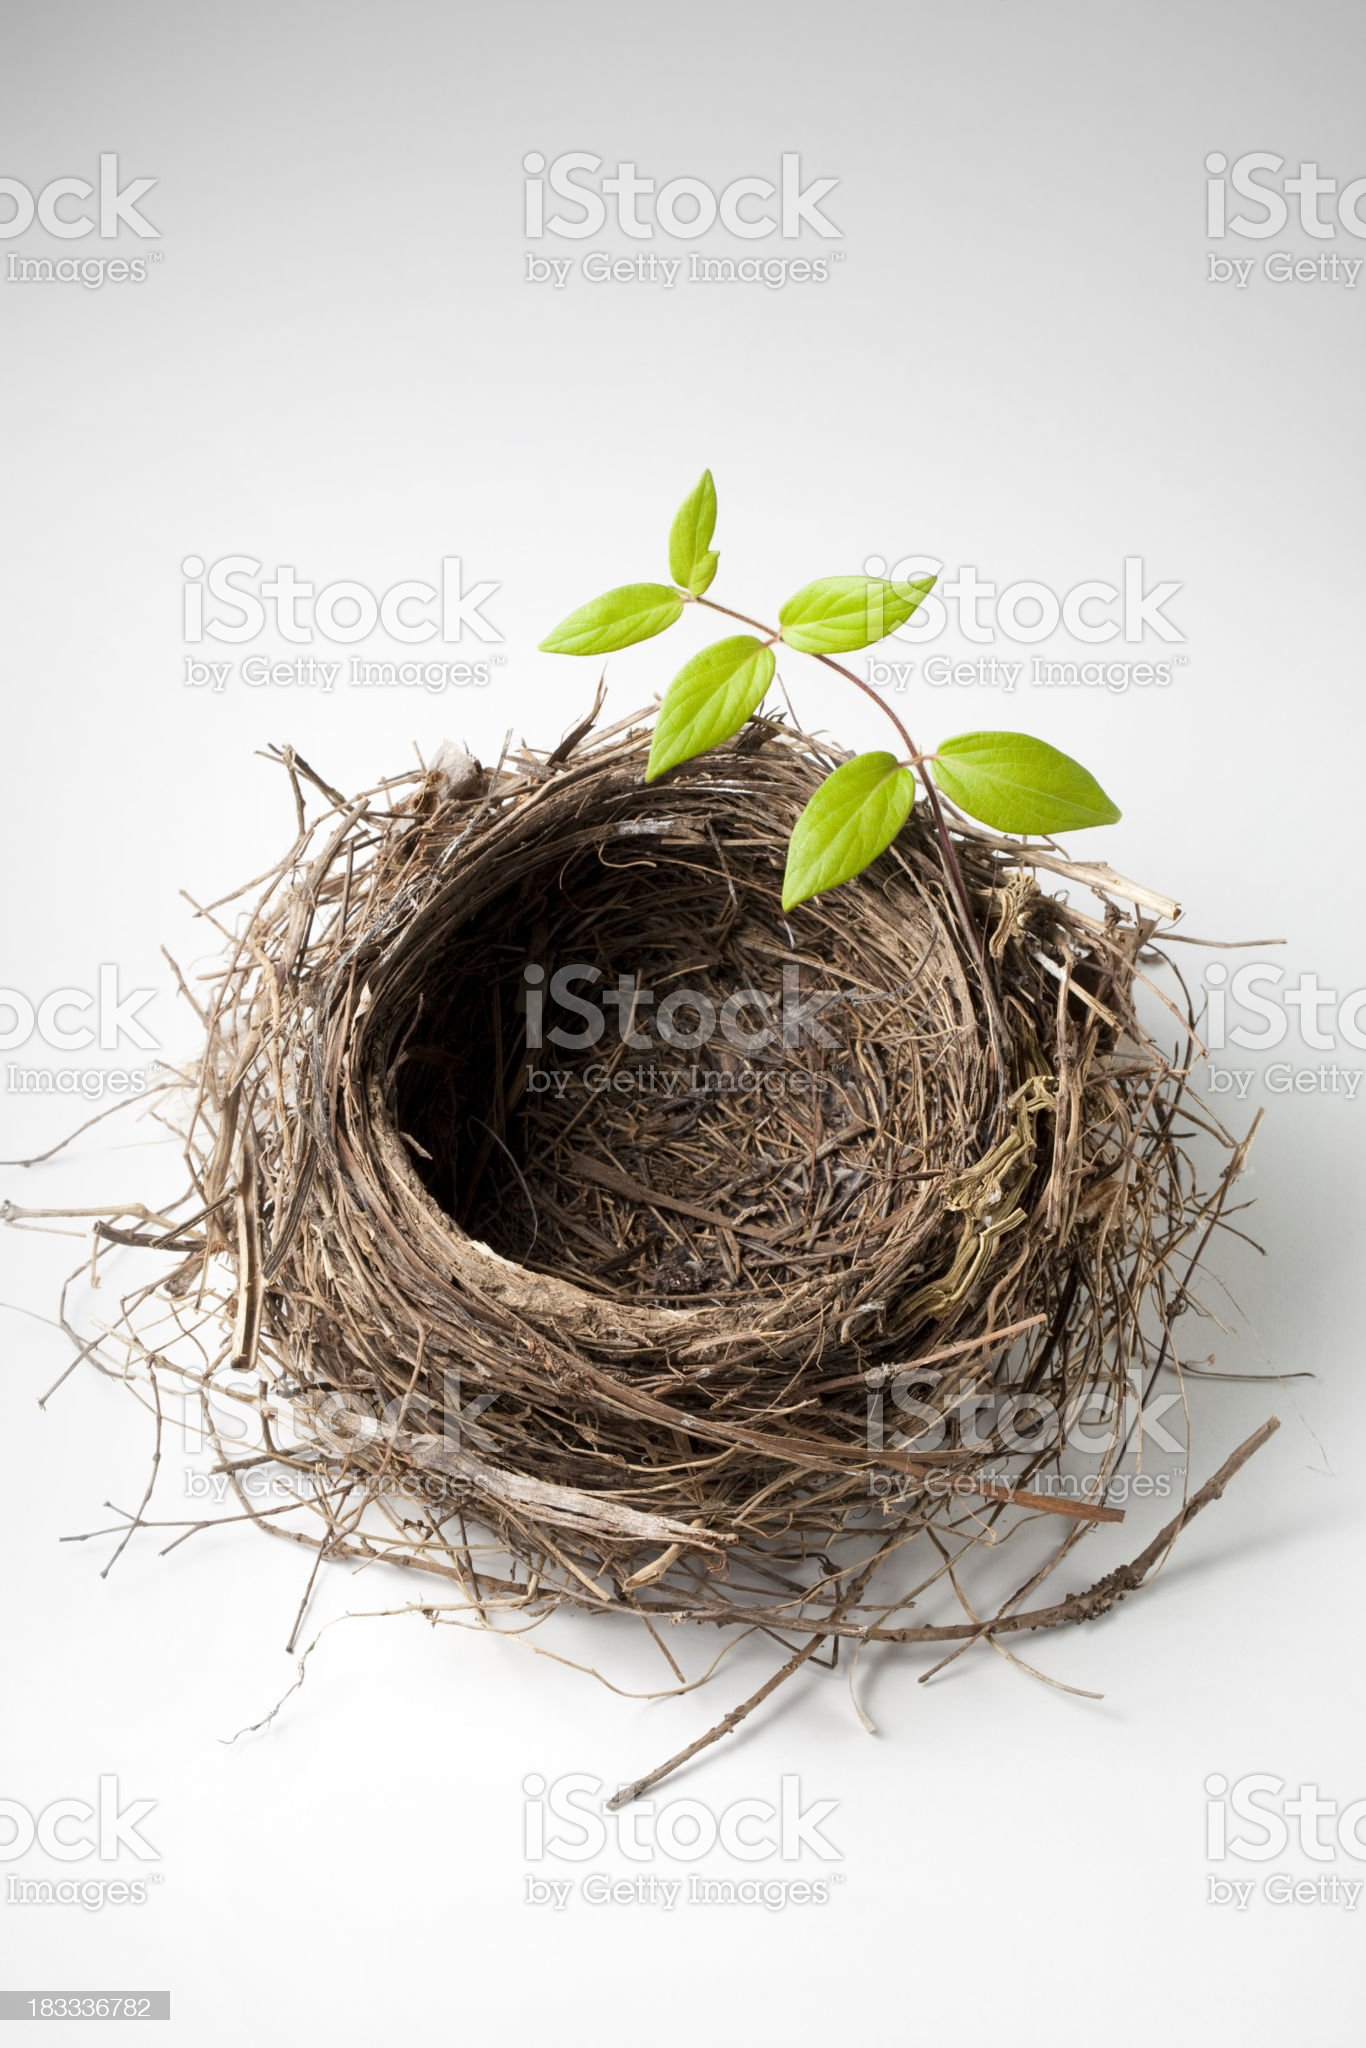 Nest with green twig royalty-free stock photo